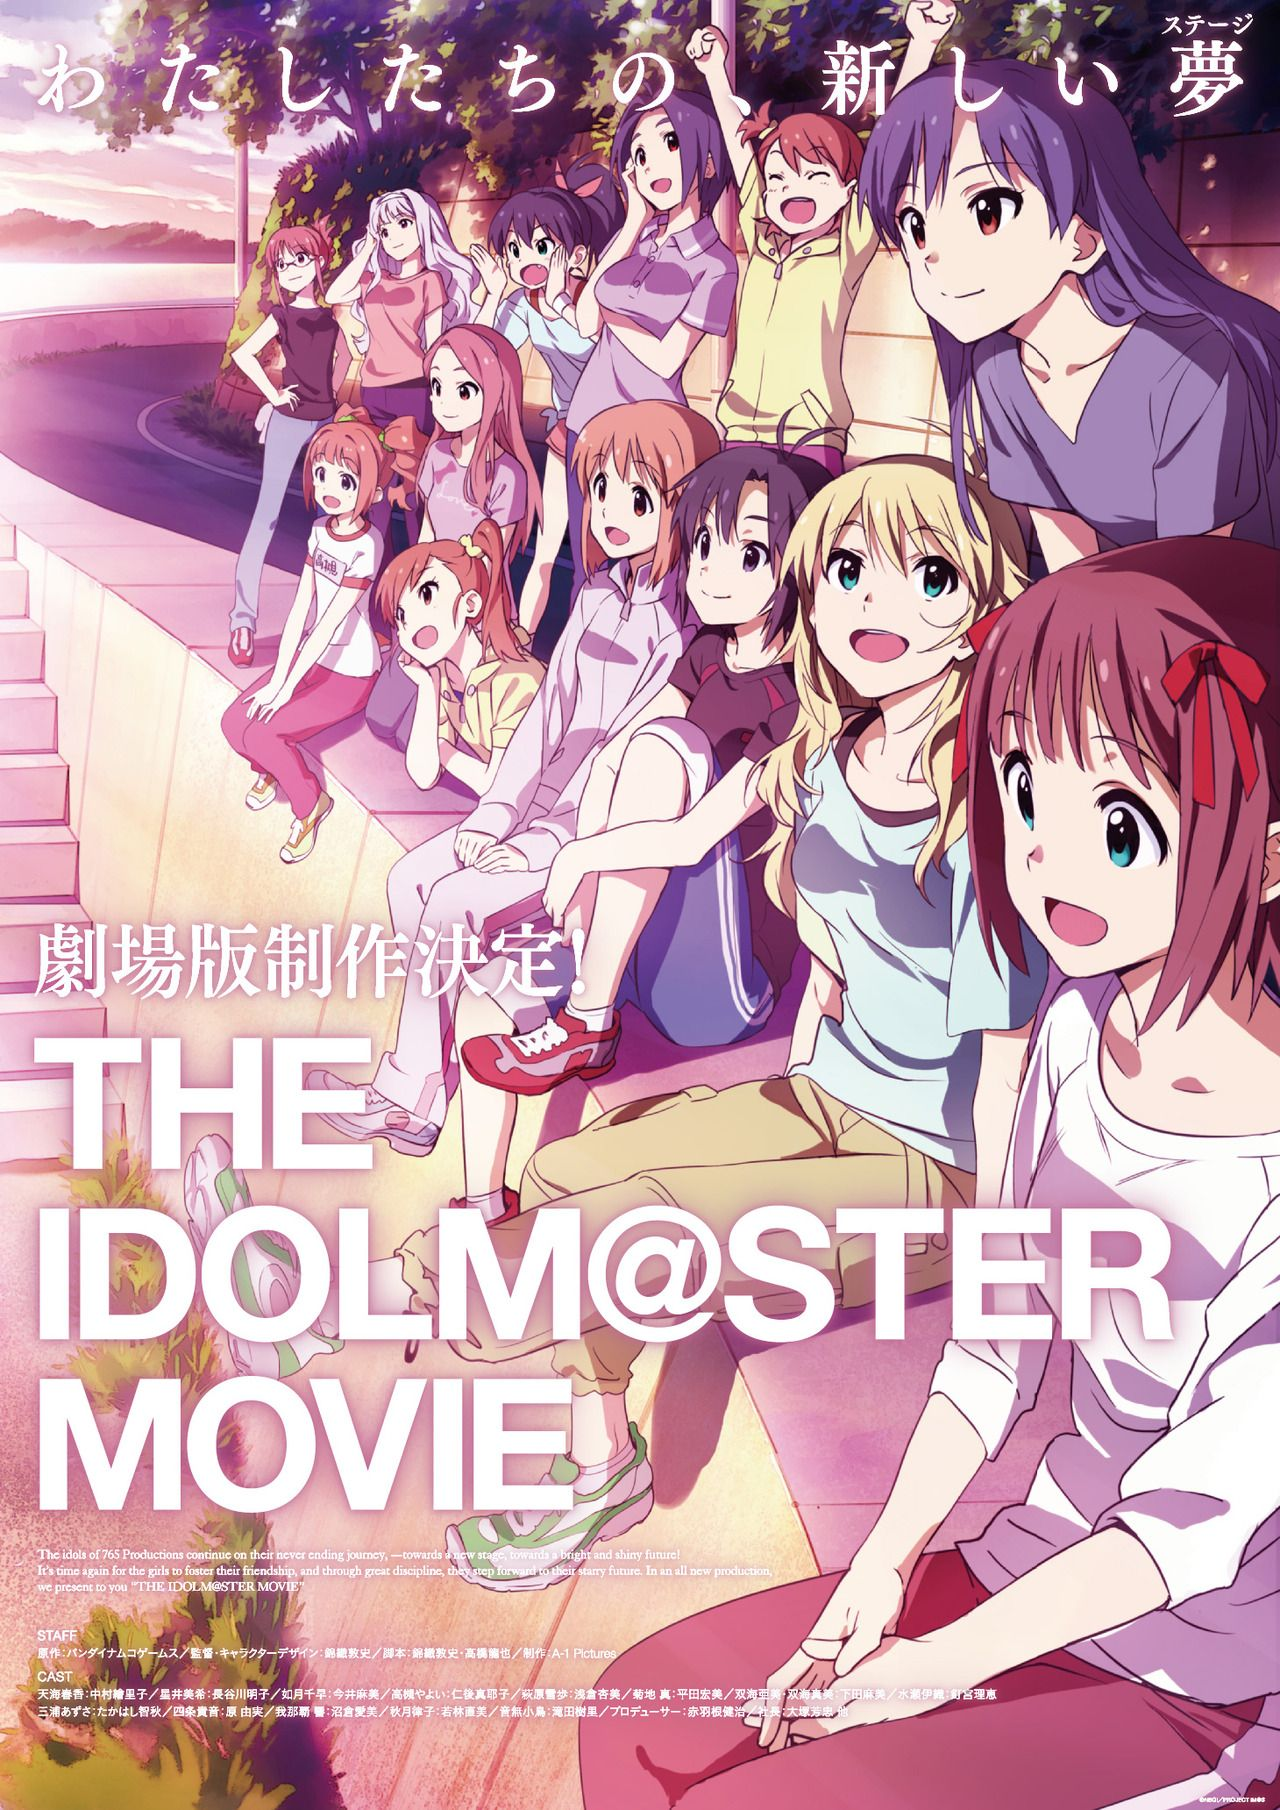 The Idolm At Ster Movie Poster Design Art Direction草野 剛